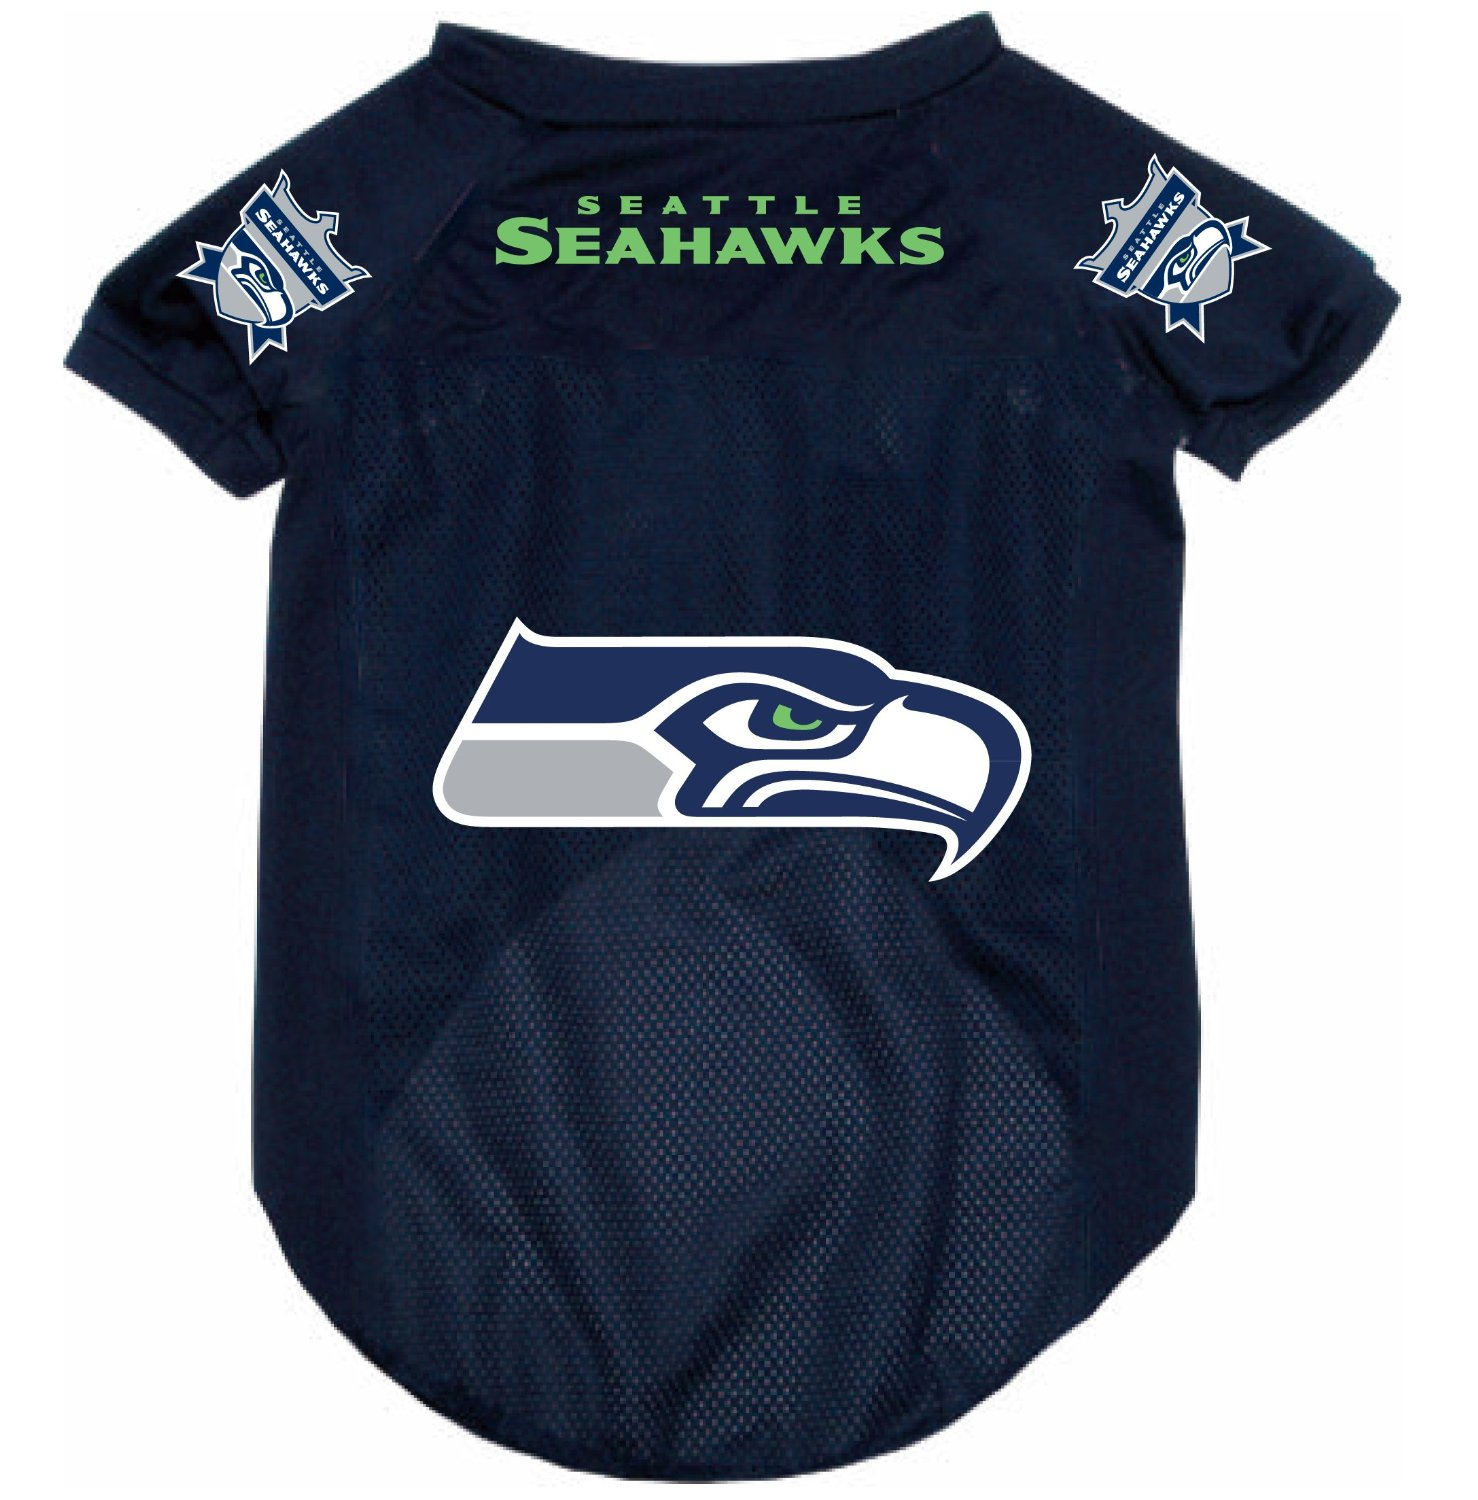 744f4394b Seattle Seahawks dog jersey on Bark and Swagger